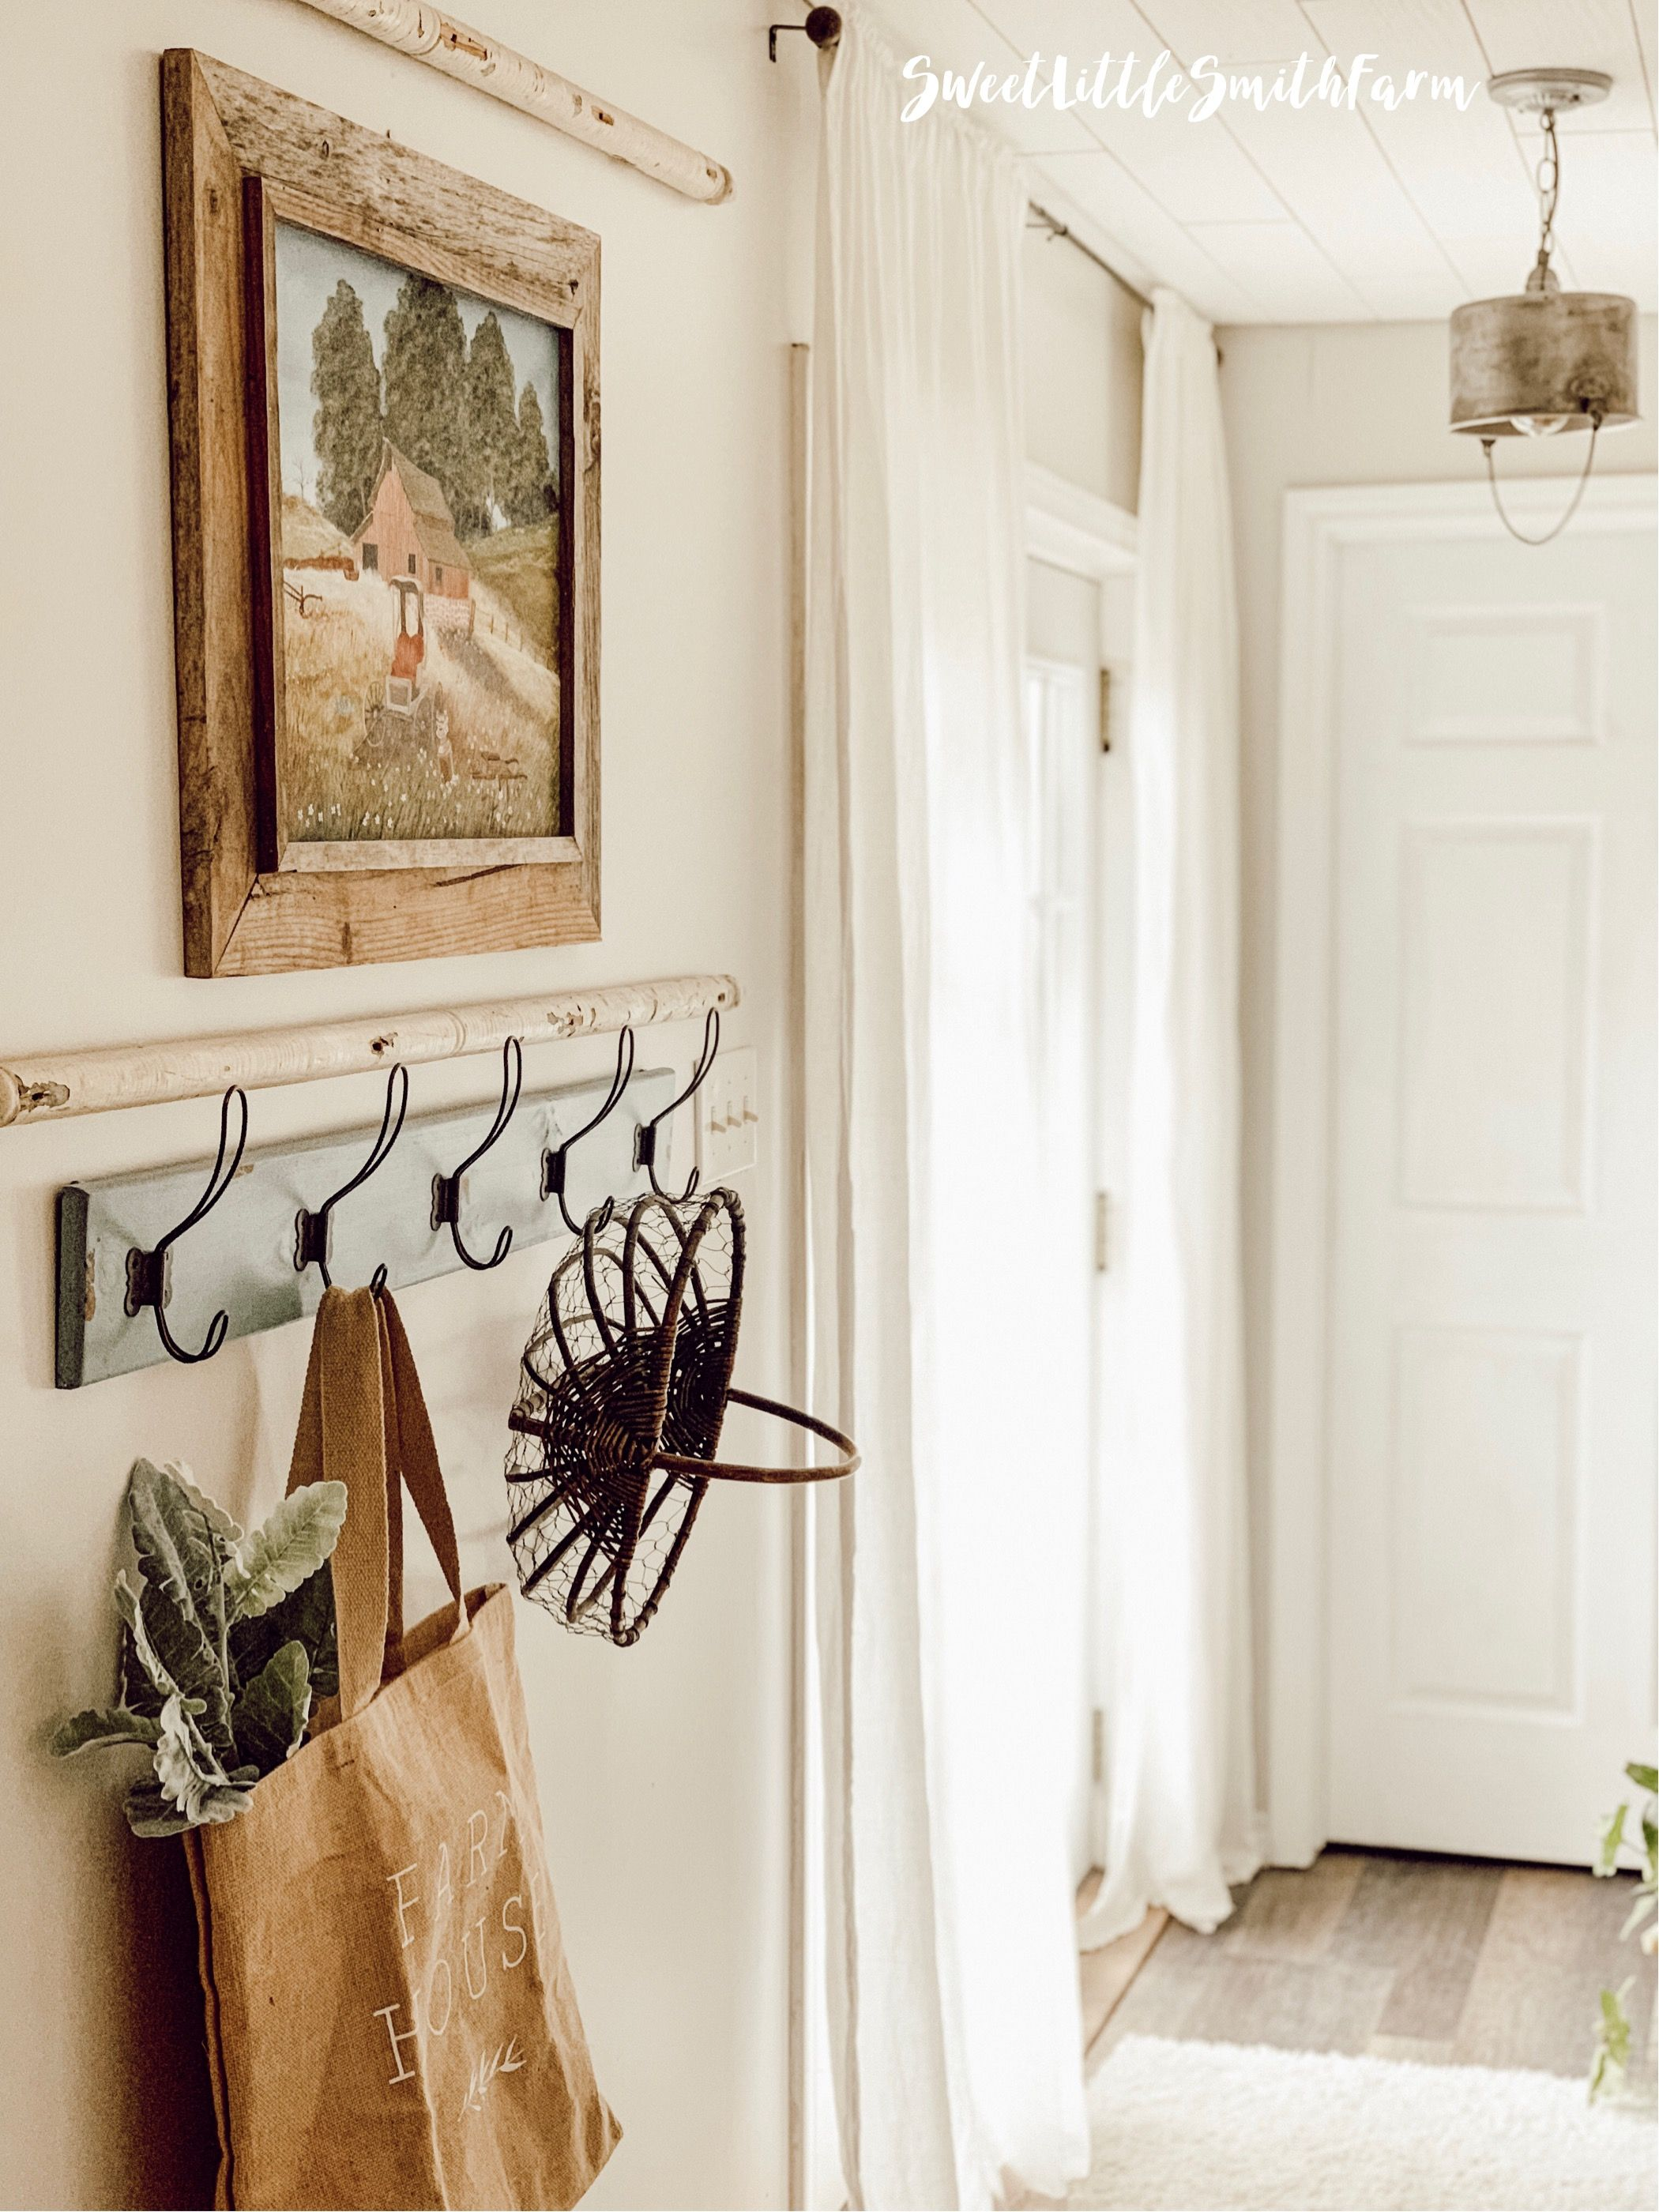 Farmhouse Wall Decor With Hooks